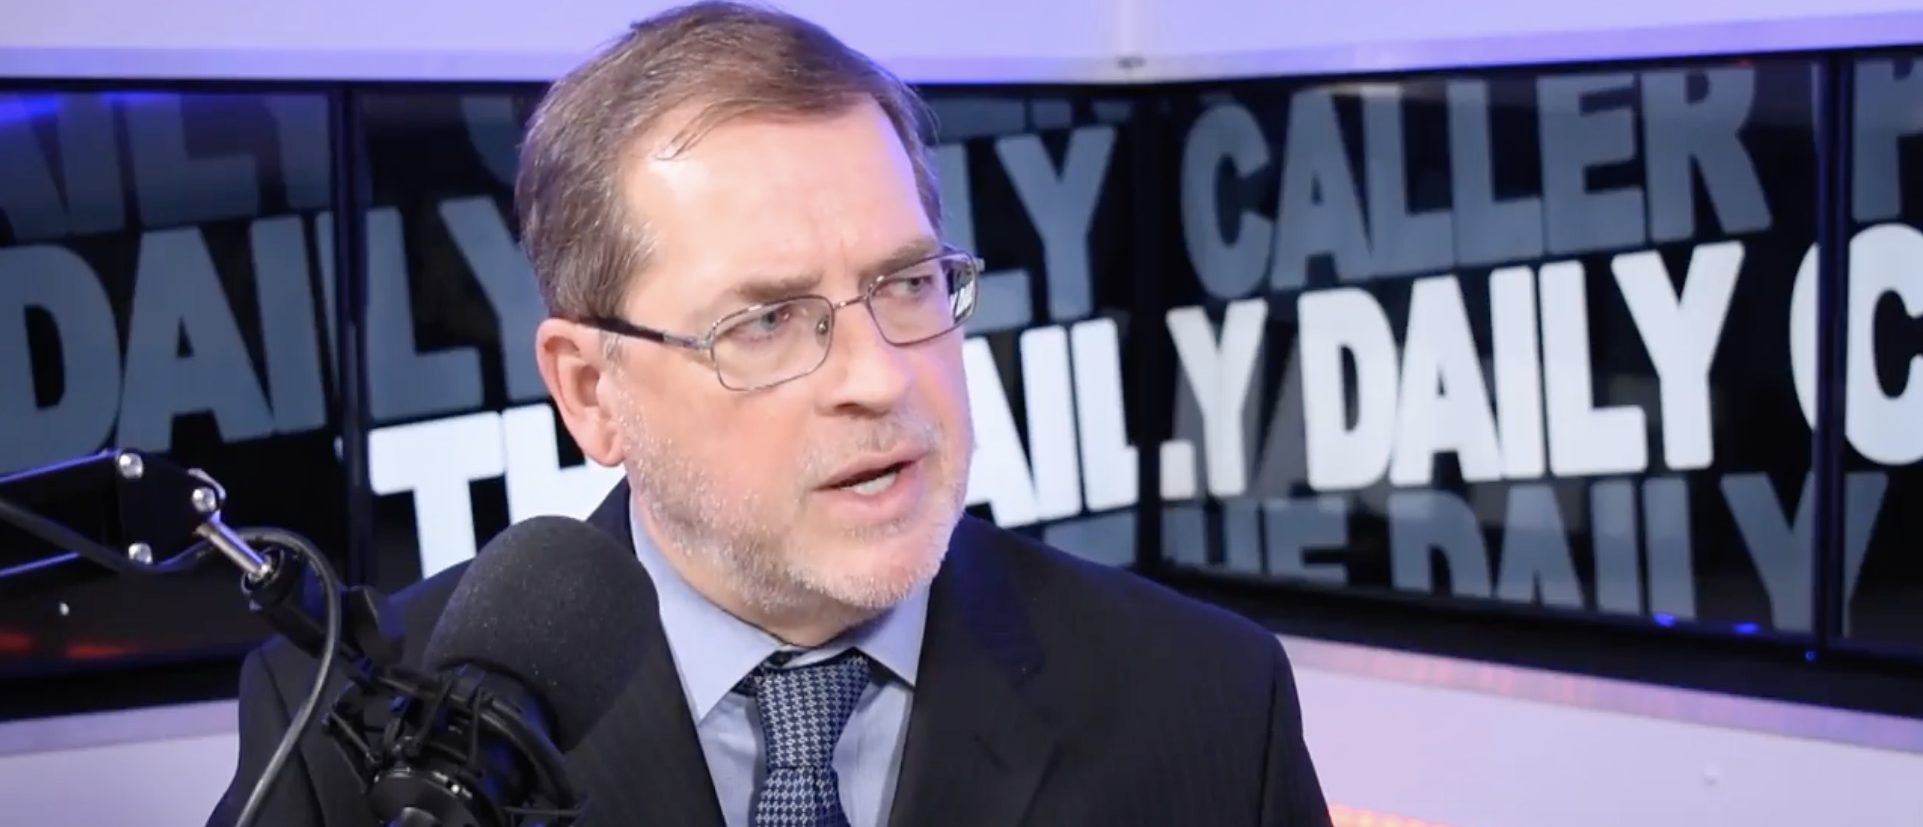 Americans for Tax Reform president Grover Norquist speaks with The Daily Daily Caller Podcast in an interview aired Friday, Nov. 9, 2018. Photo: The Daily Caller